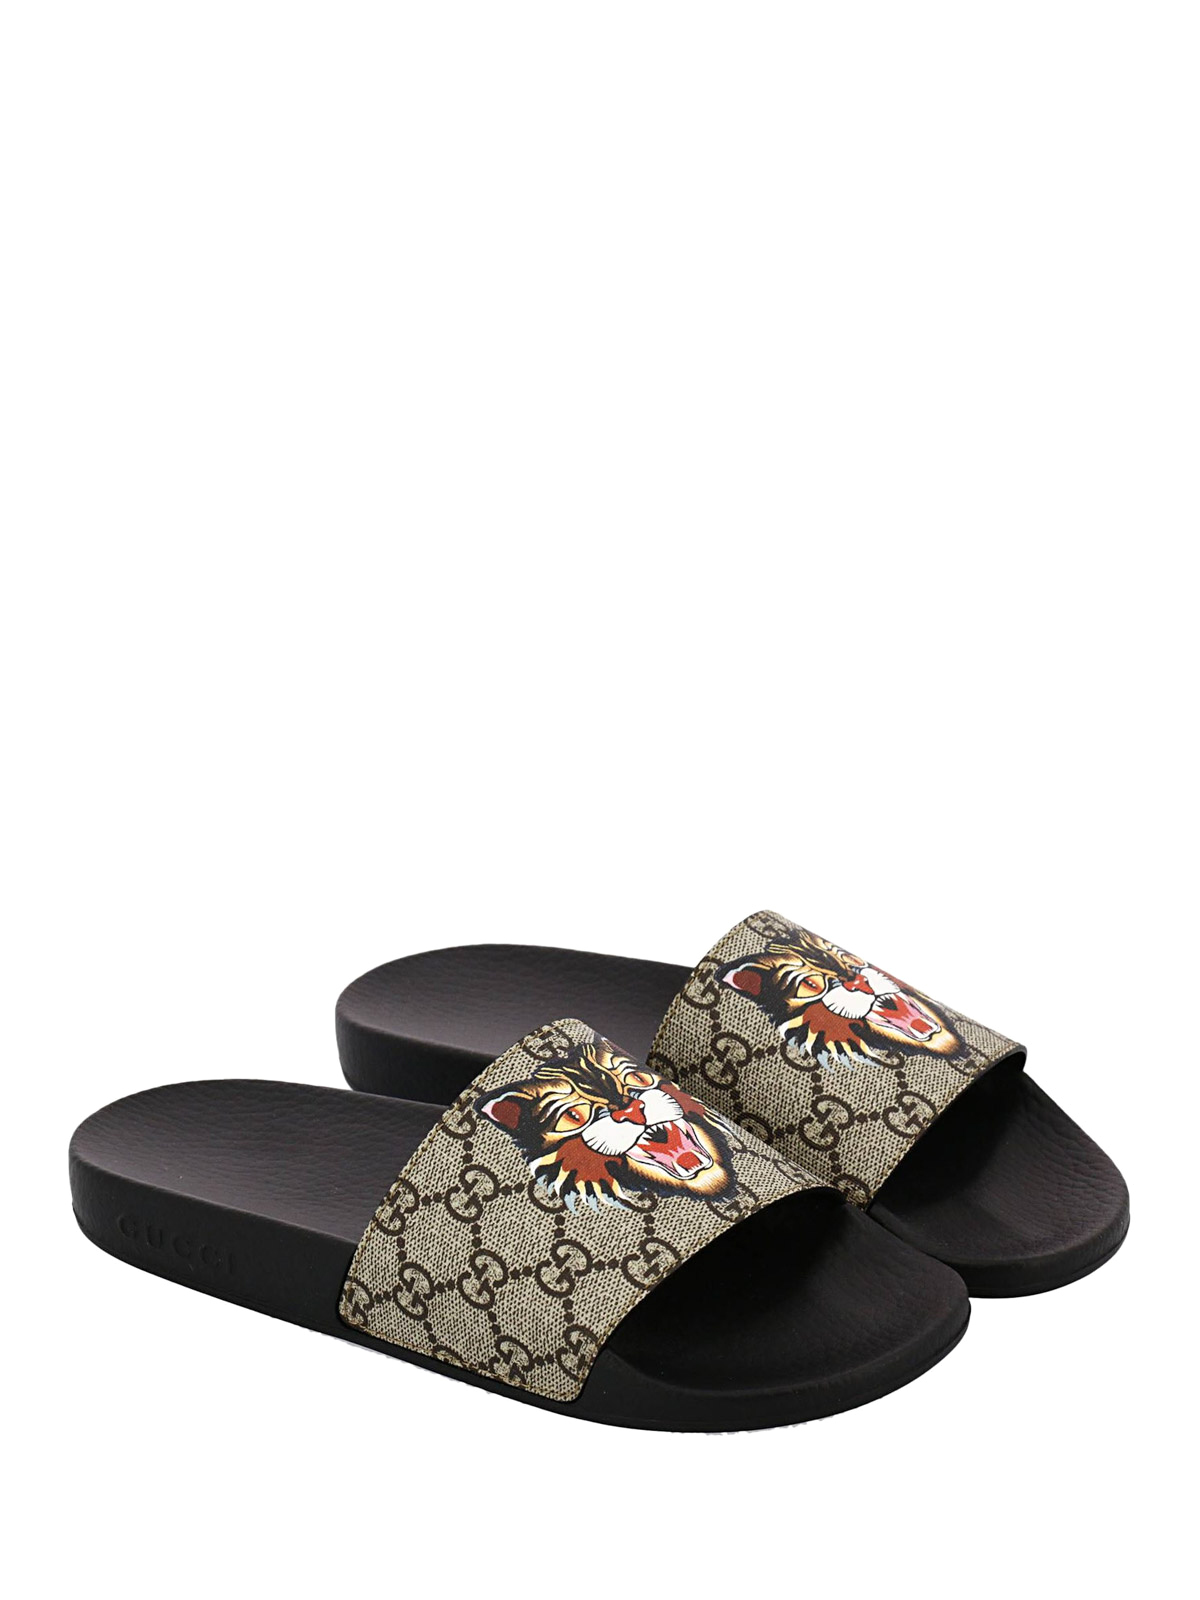 bb410fb4a22 Gucci - Angry Cat rubber slippers - Loafers   Slippers - 481155 ...